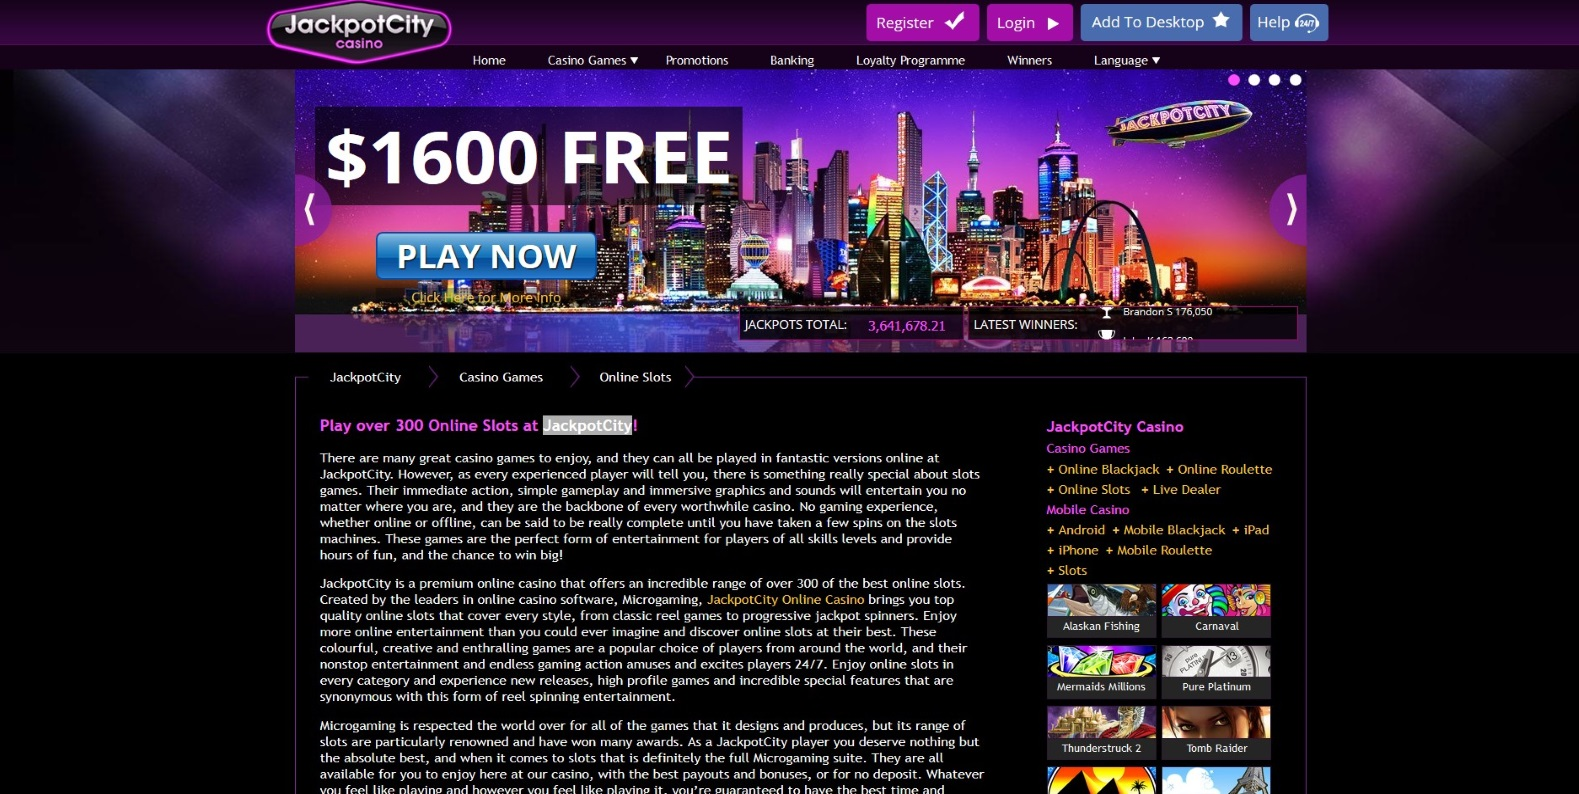 Online Slots Games At JackpotCity Casino